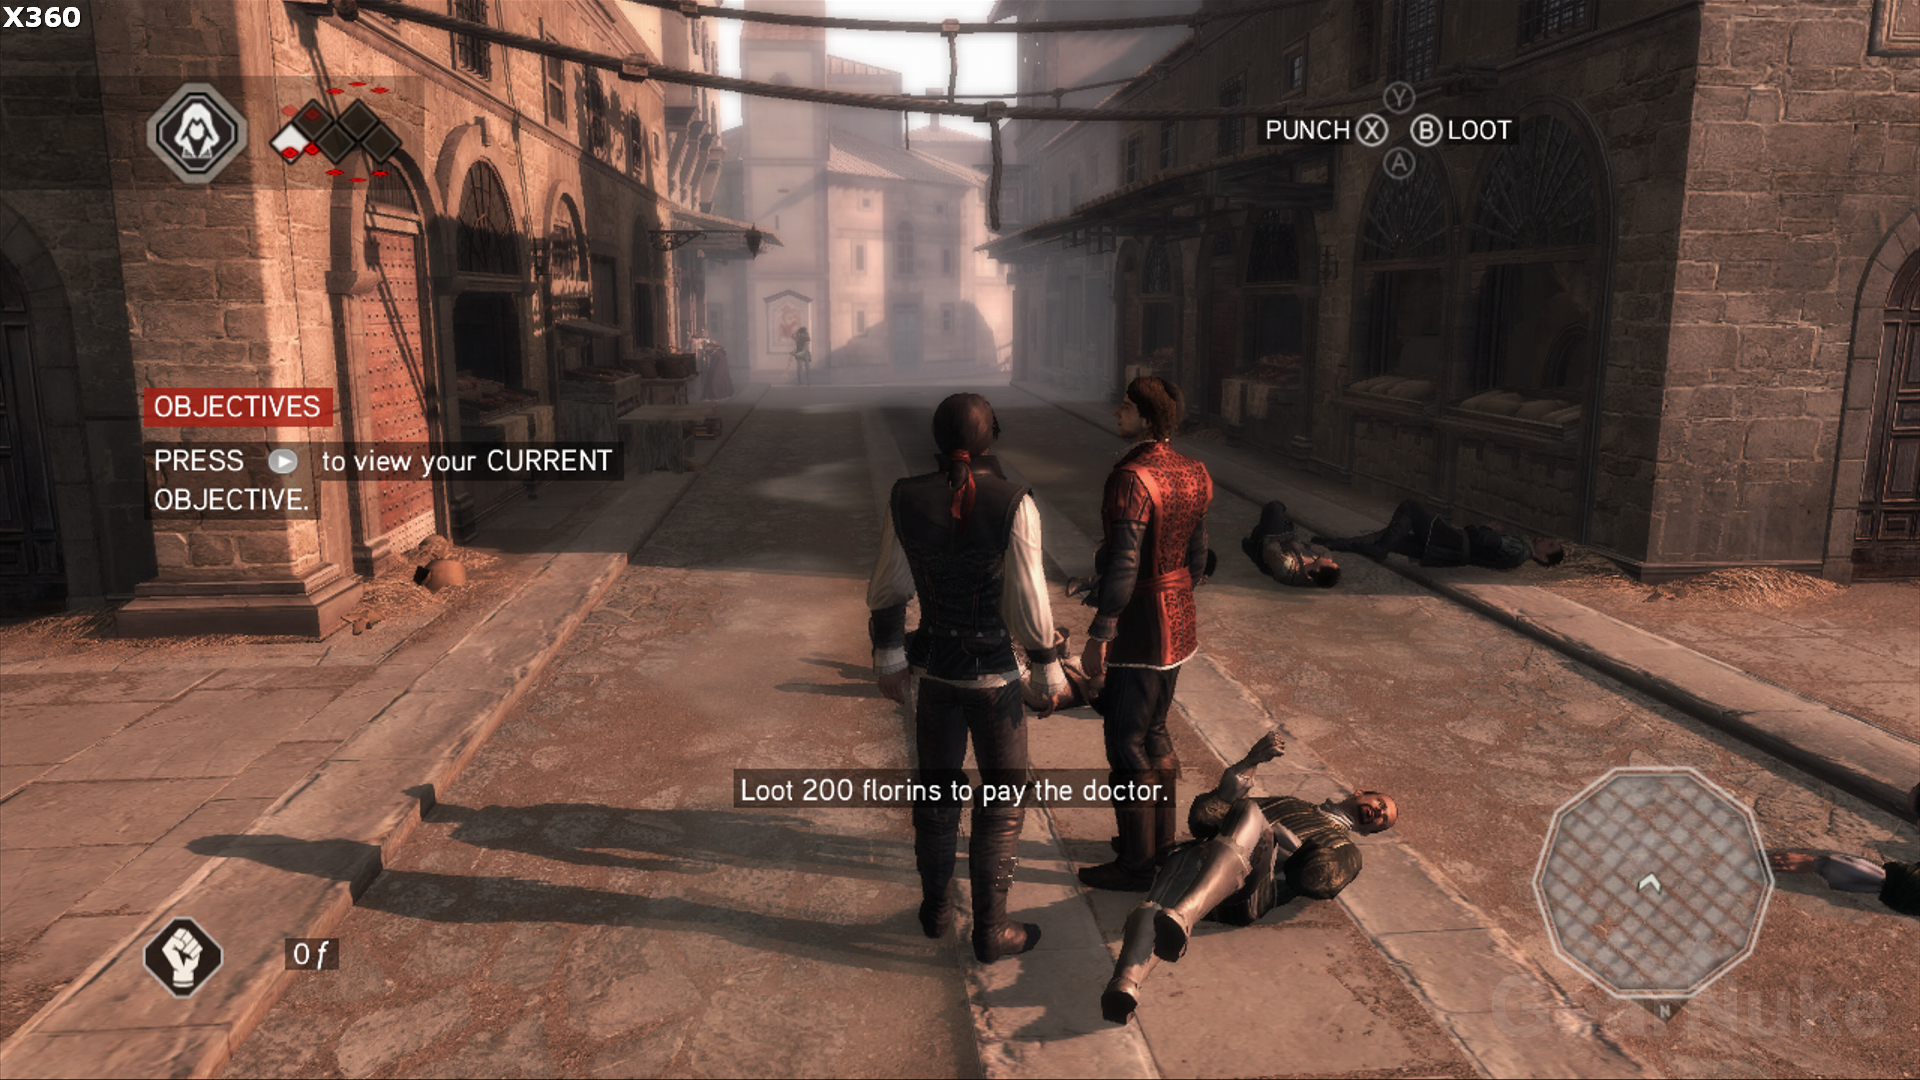 Assassin S Creed The Ezio Collection Xbo Vs X360 Comparison Shows A Worthy Remaster